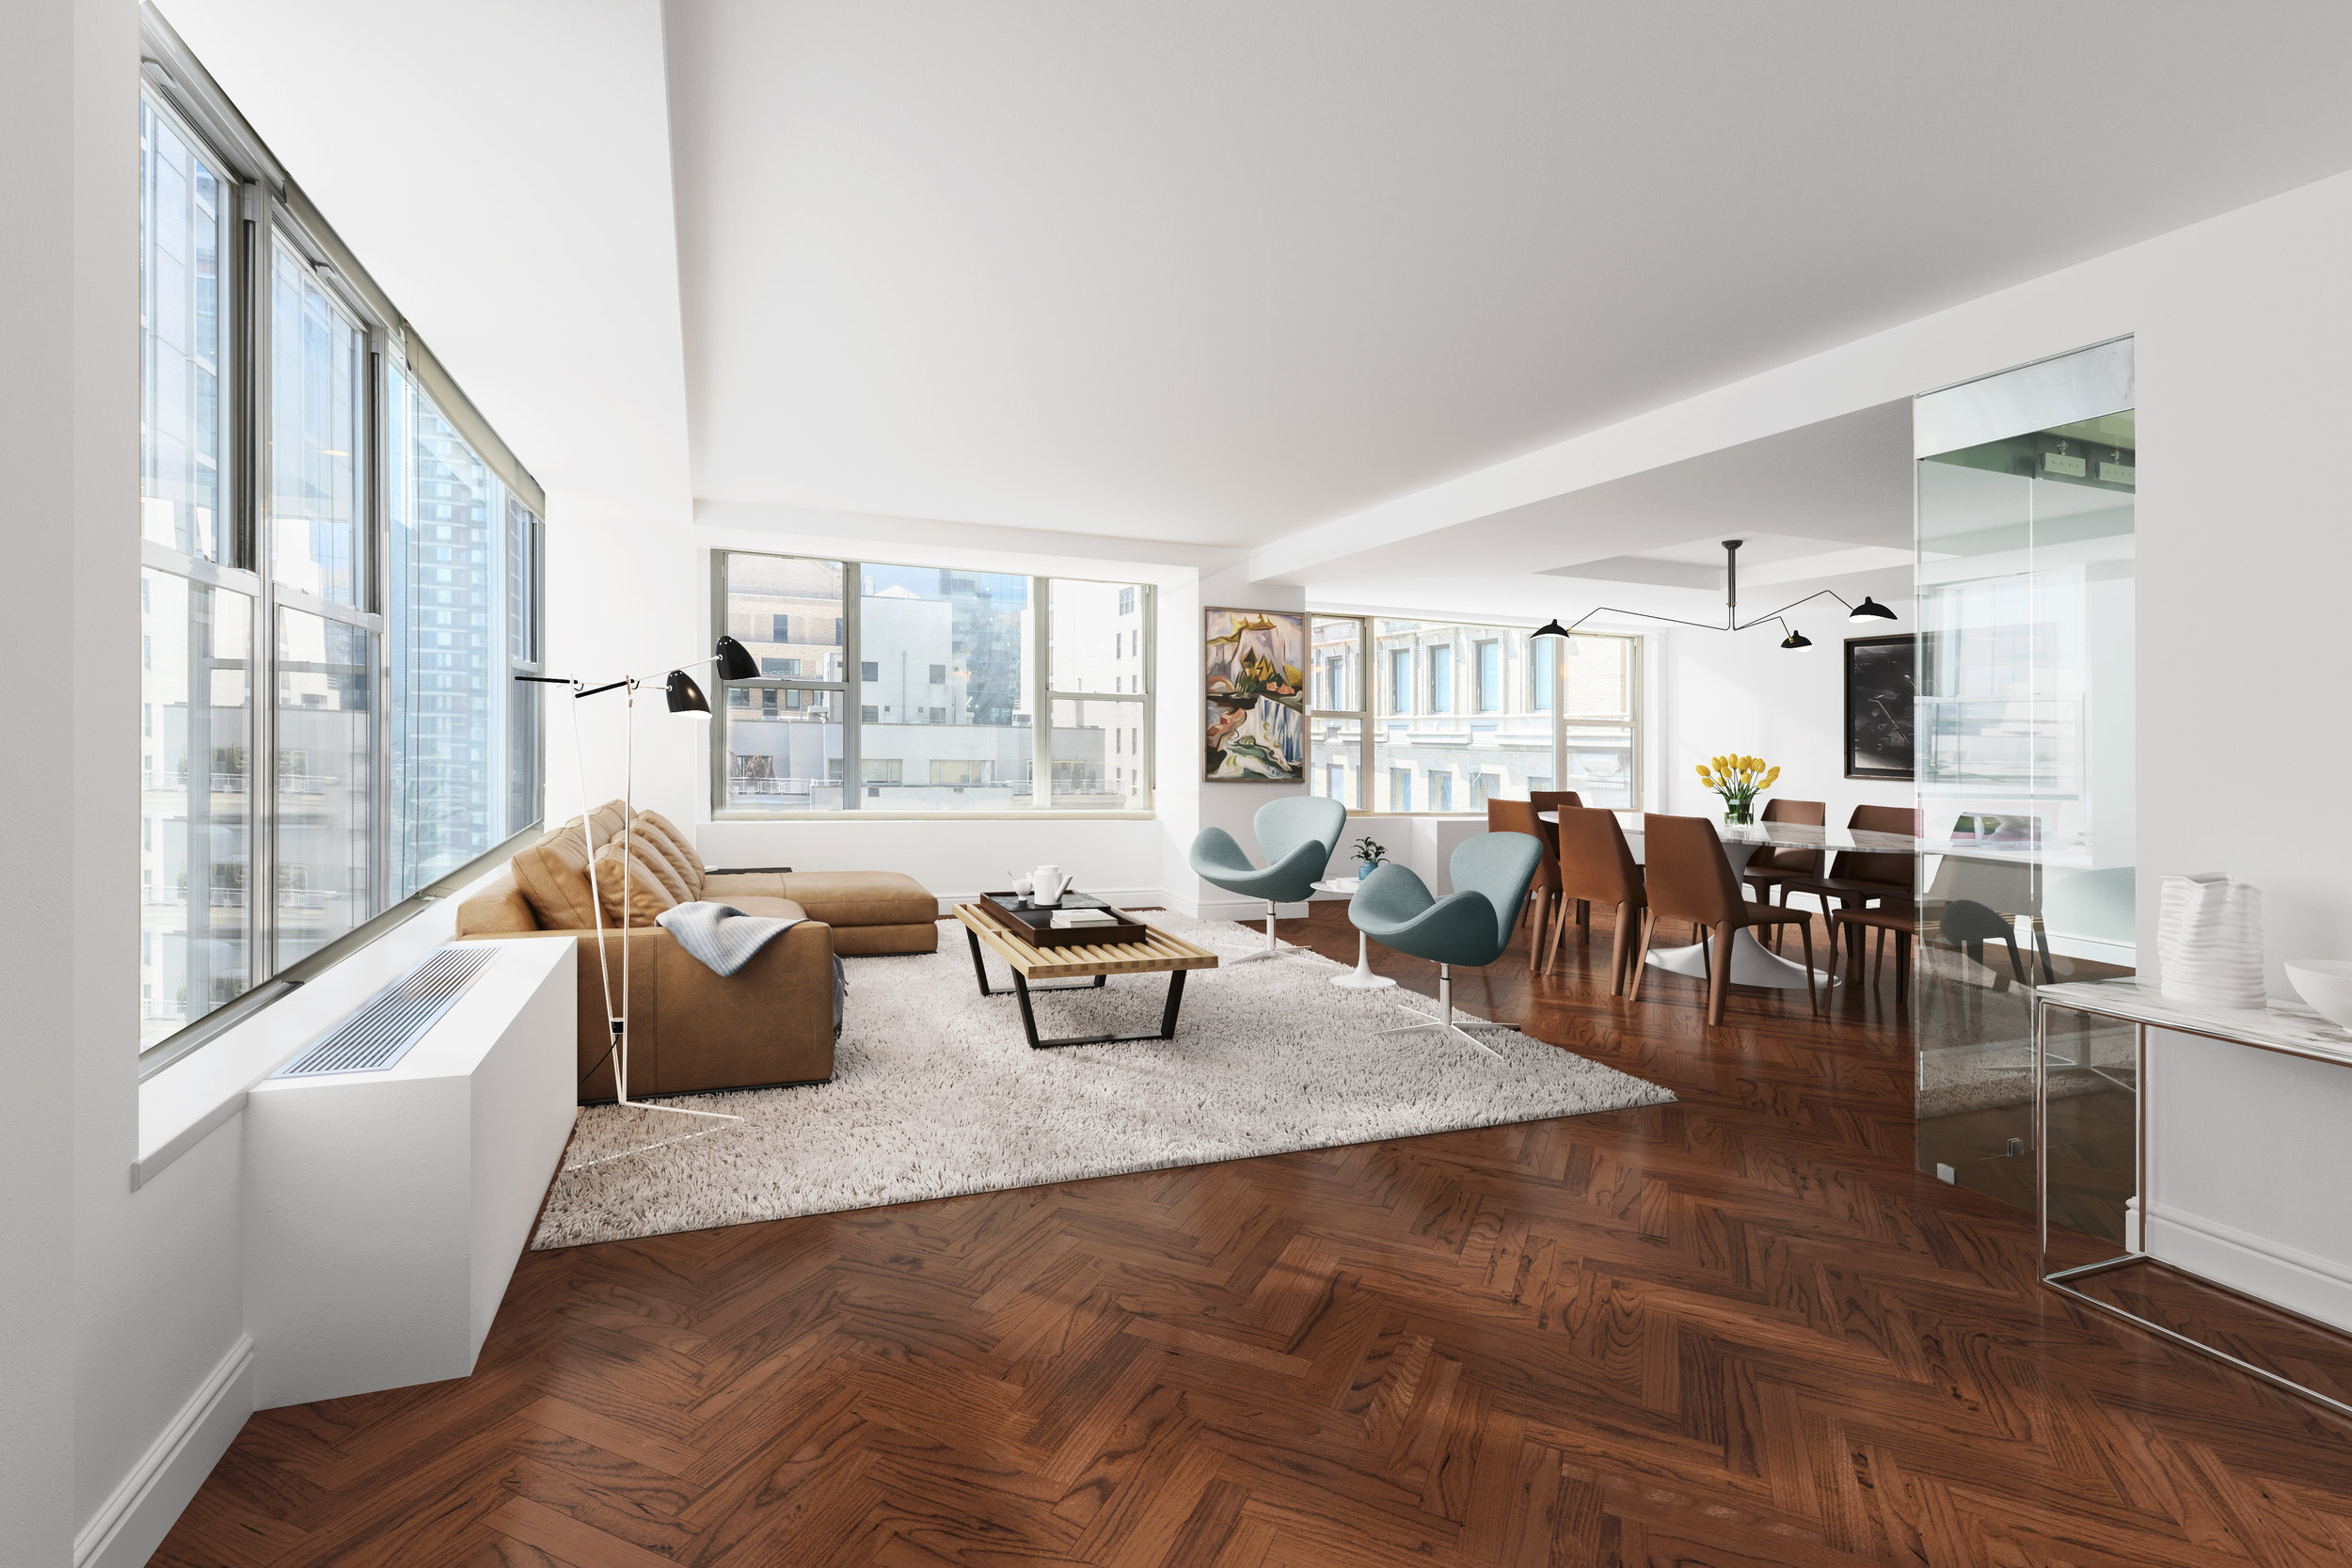 117 EAST 57TH STREET, 20A - $3,200,000 // 4 Beds // 3.5 Baths // 2,08 SQFTA luxurious corner condo nestled a few blocks from Grand Army Plaza and Central Park, this 3 or 4 bedroom, 3.5-bathroom home blends a collection of high-end finishes with a thoughtful layout and classic city views.